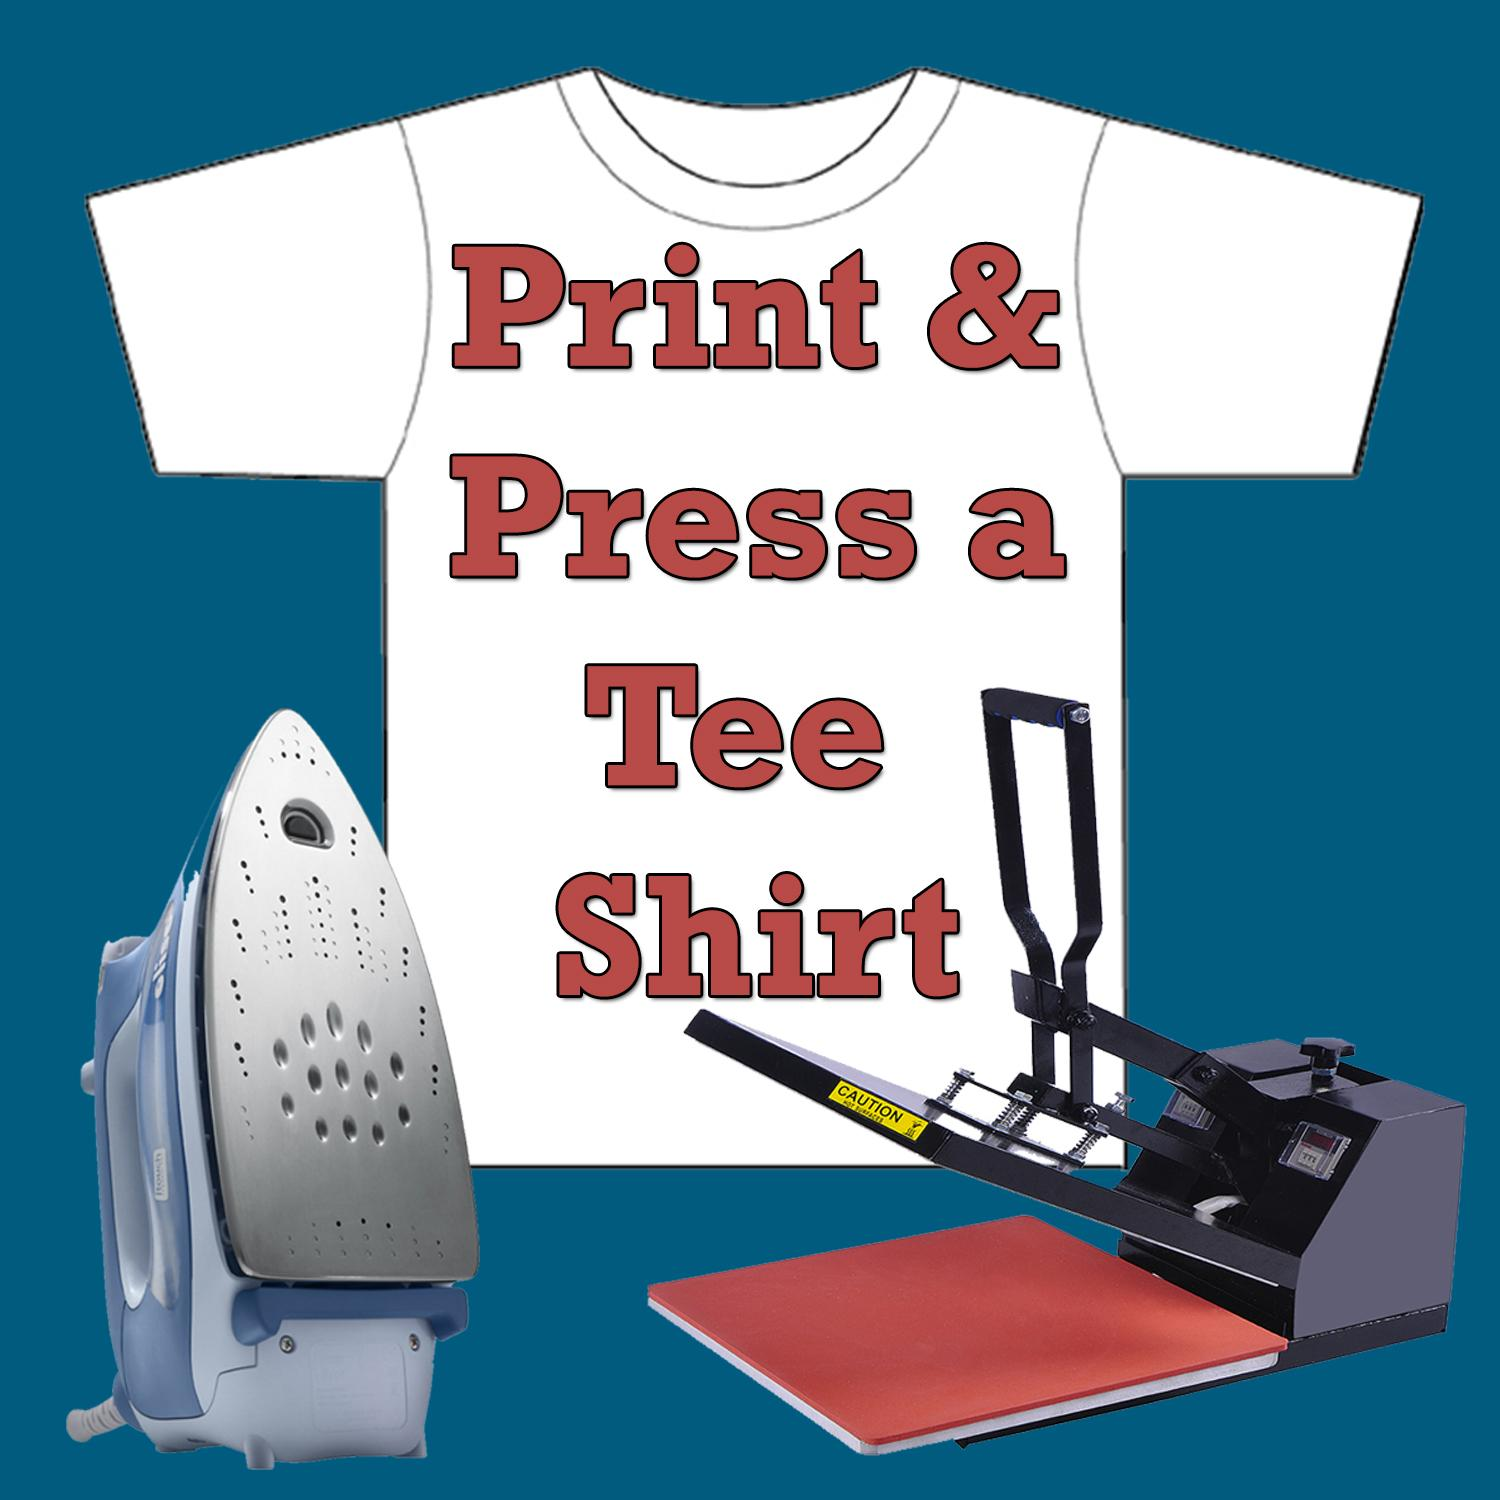 Print your own t shirt south park t shirts Printing your own t shirts